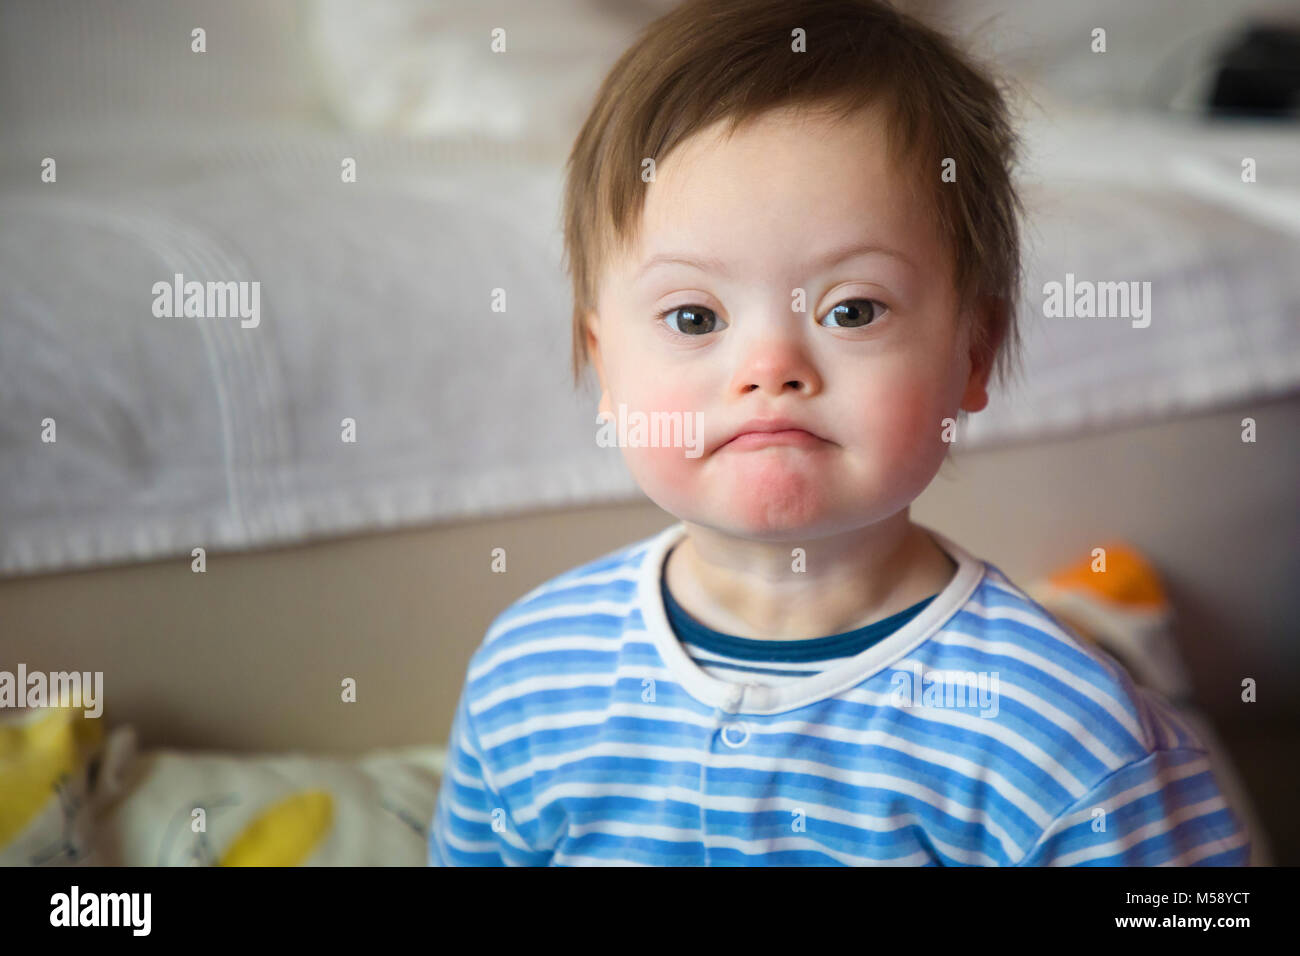 Portrait of cute baby boy with Down syndrome Stock Photo